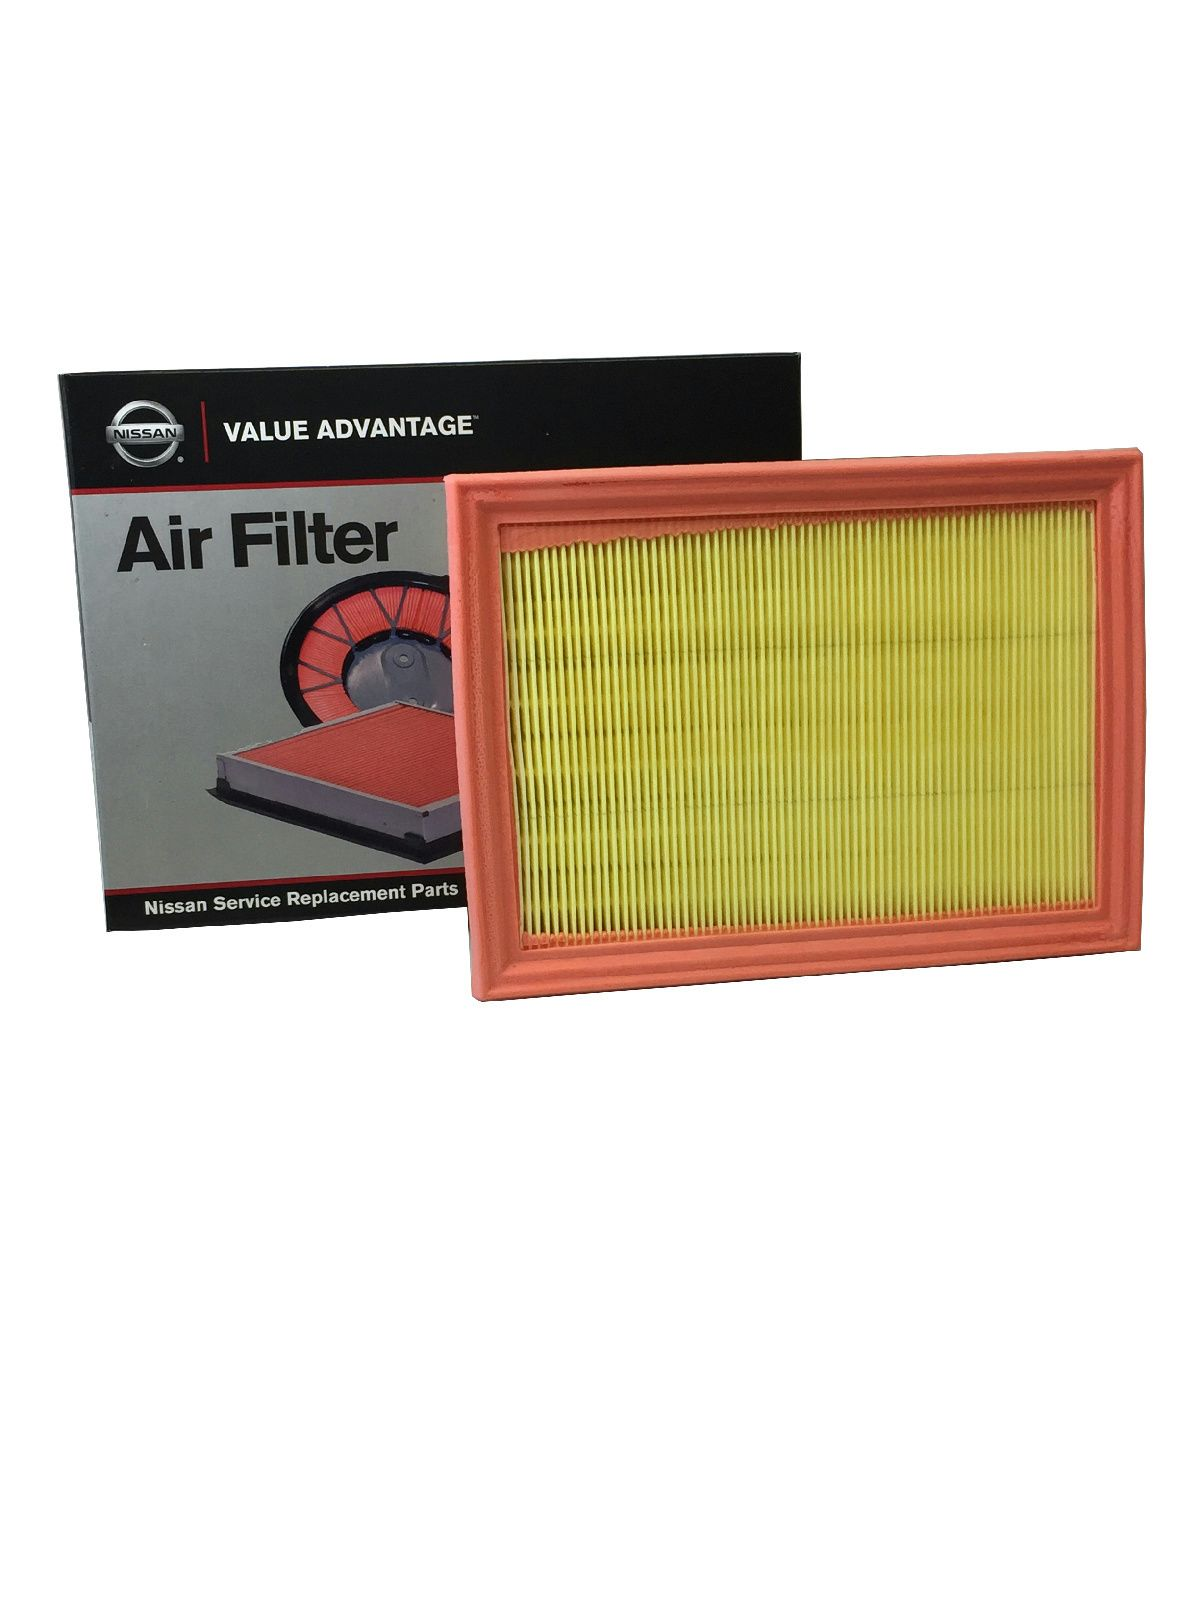 Nissan OEM Value Advantage Air Filter Replacement VG30DE(TT) VR30DDTT - Nissan 300ZX Z32 / Infiniti Q50 Q60 3.0t V37 CV37